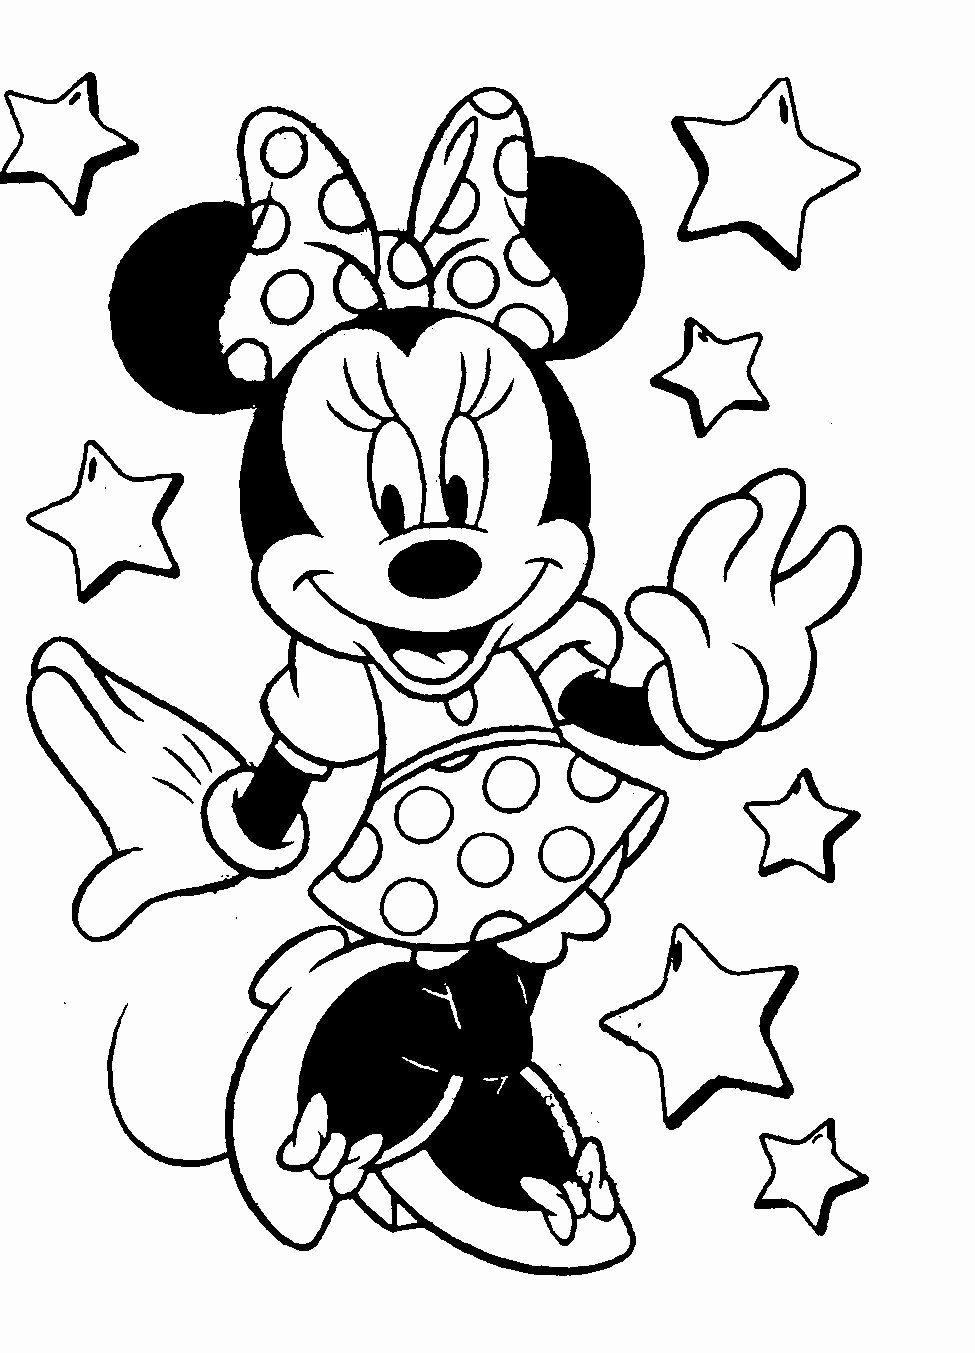 Mickey Mouse Online Coloring Fresh Fabulous Mickey Mouse Coloring Pages To Print Free Disney Coloring Pages Mickey Mouse Coloring Pages Disney Coloring Sheets